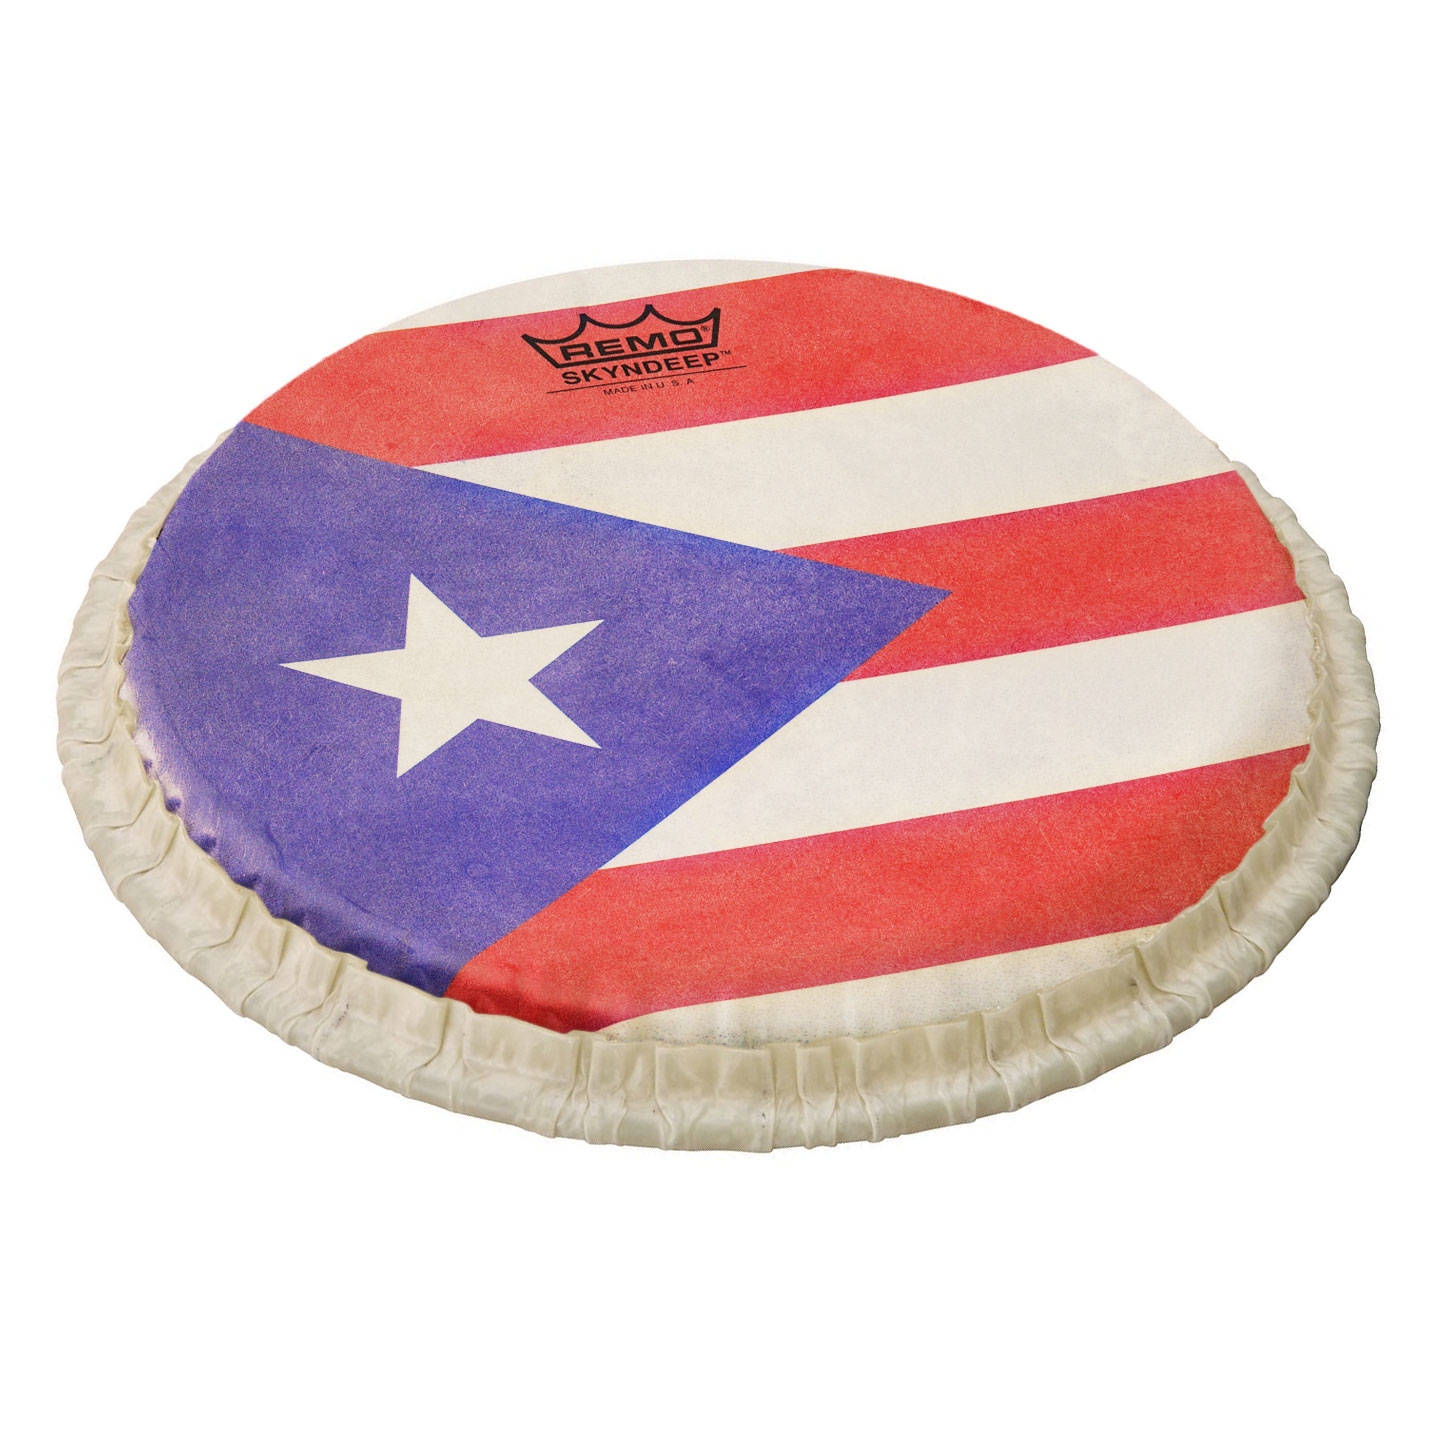 "Remo 11.75"" Tucked Skyndeep Conga Drum Head with Puerto Rican Flag Graphic"